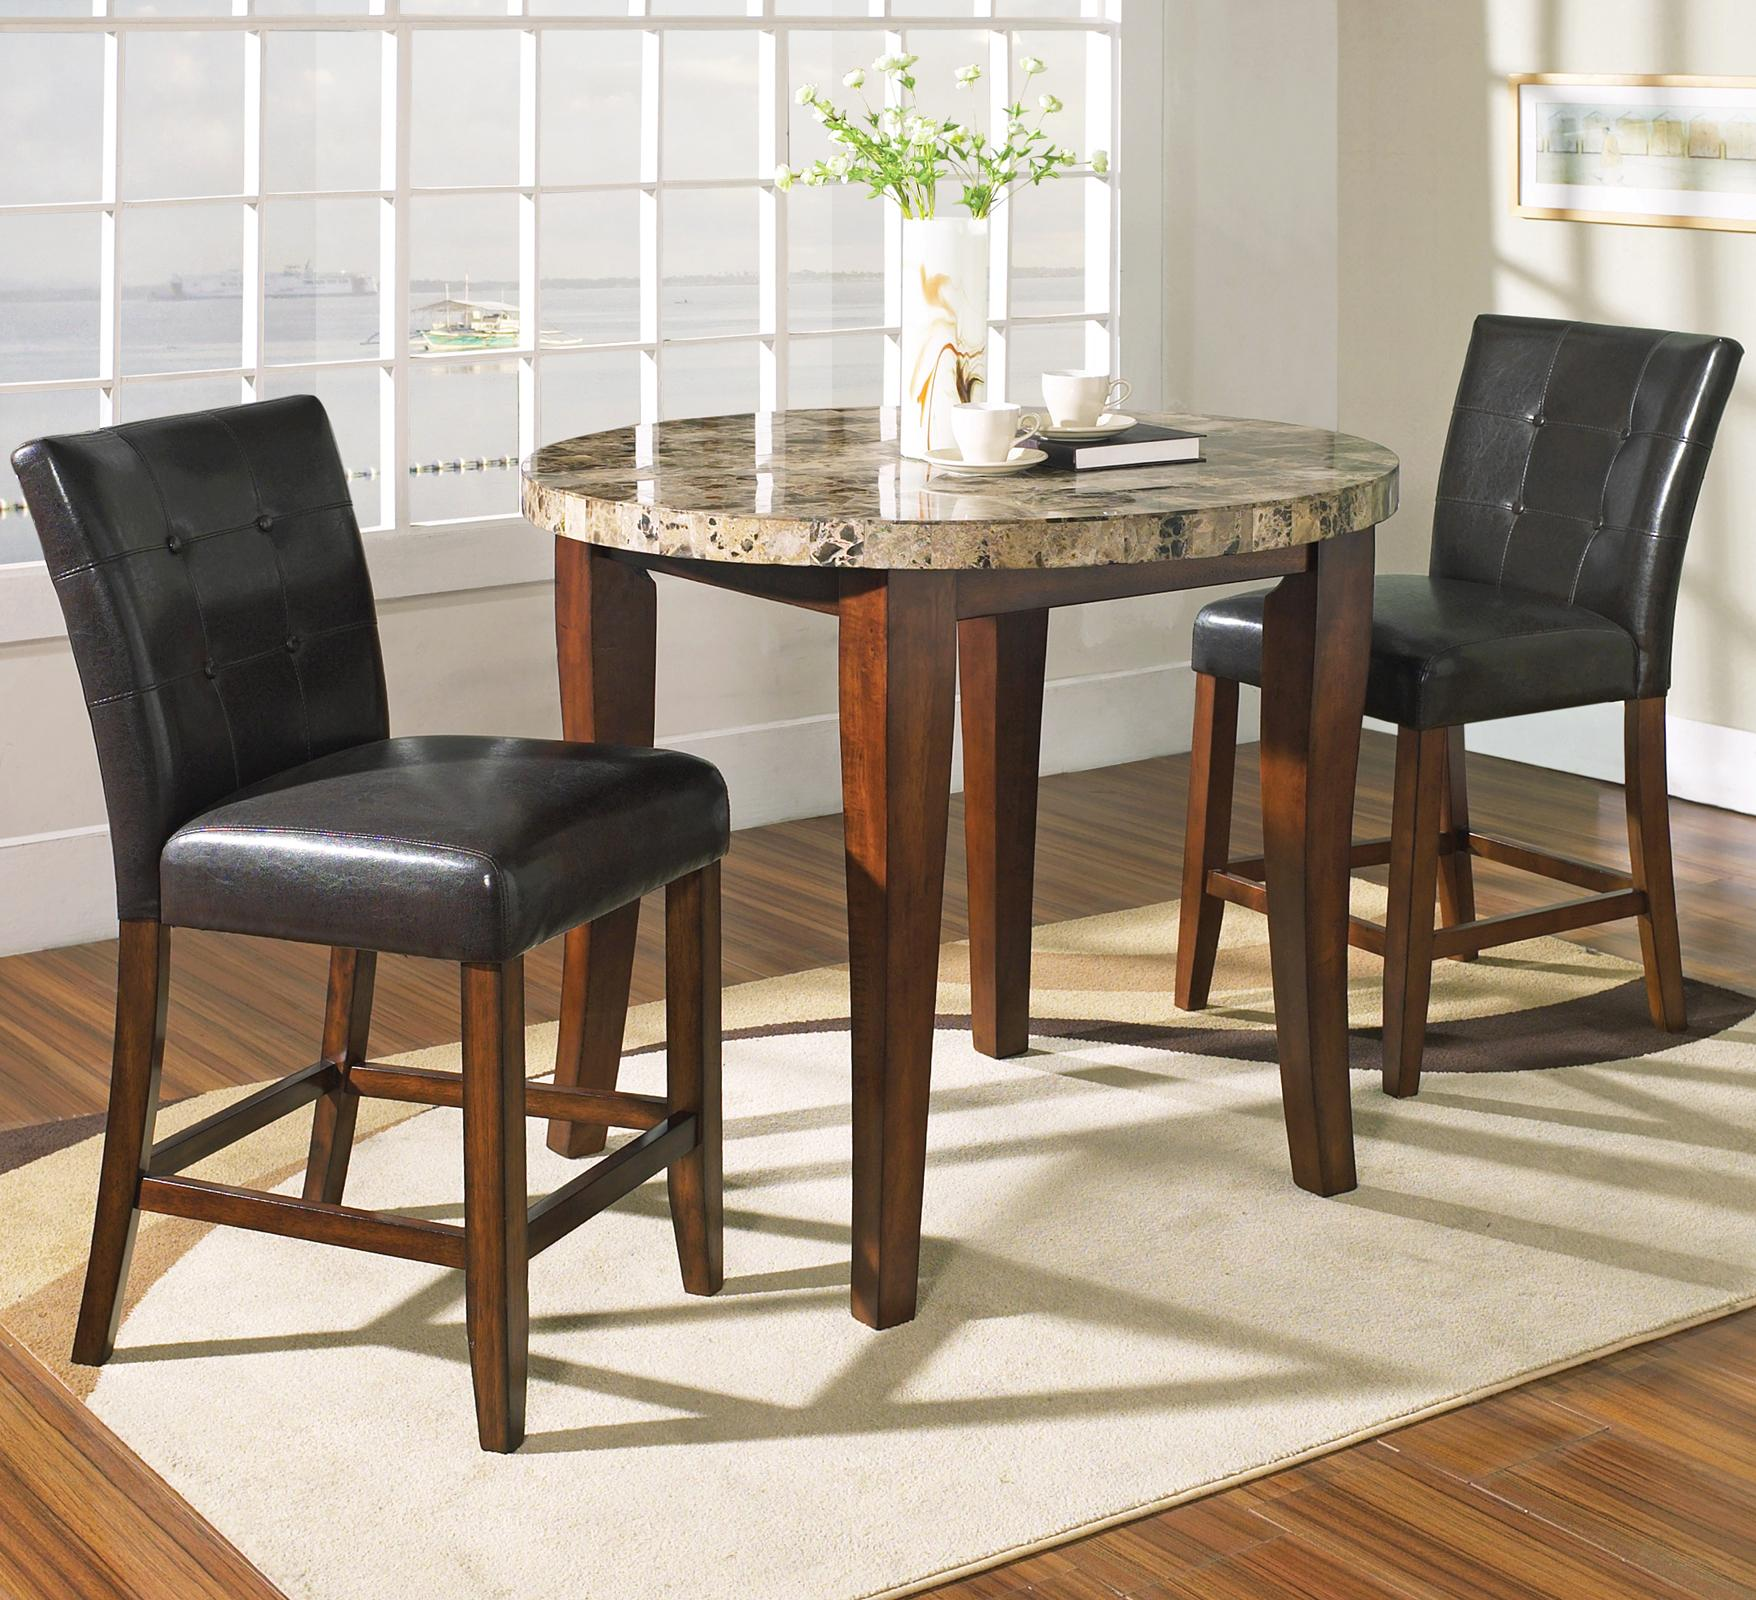 Steve Silver Montibello 3 Piece Counter Height Round Table and